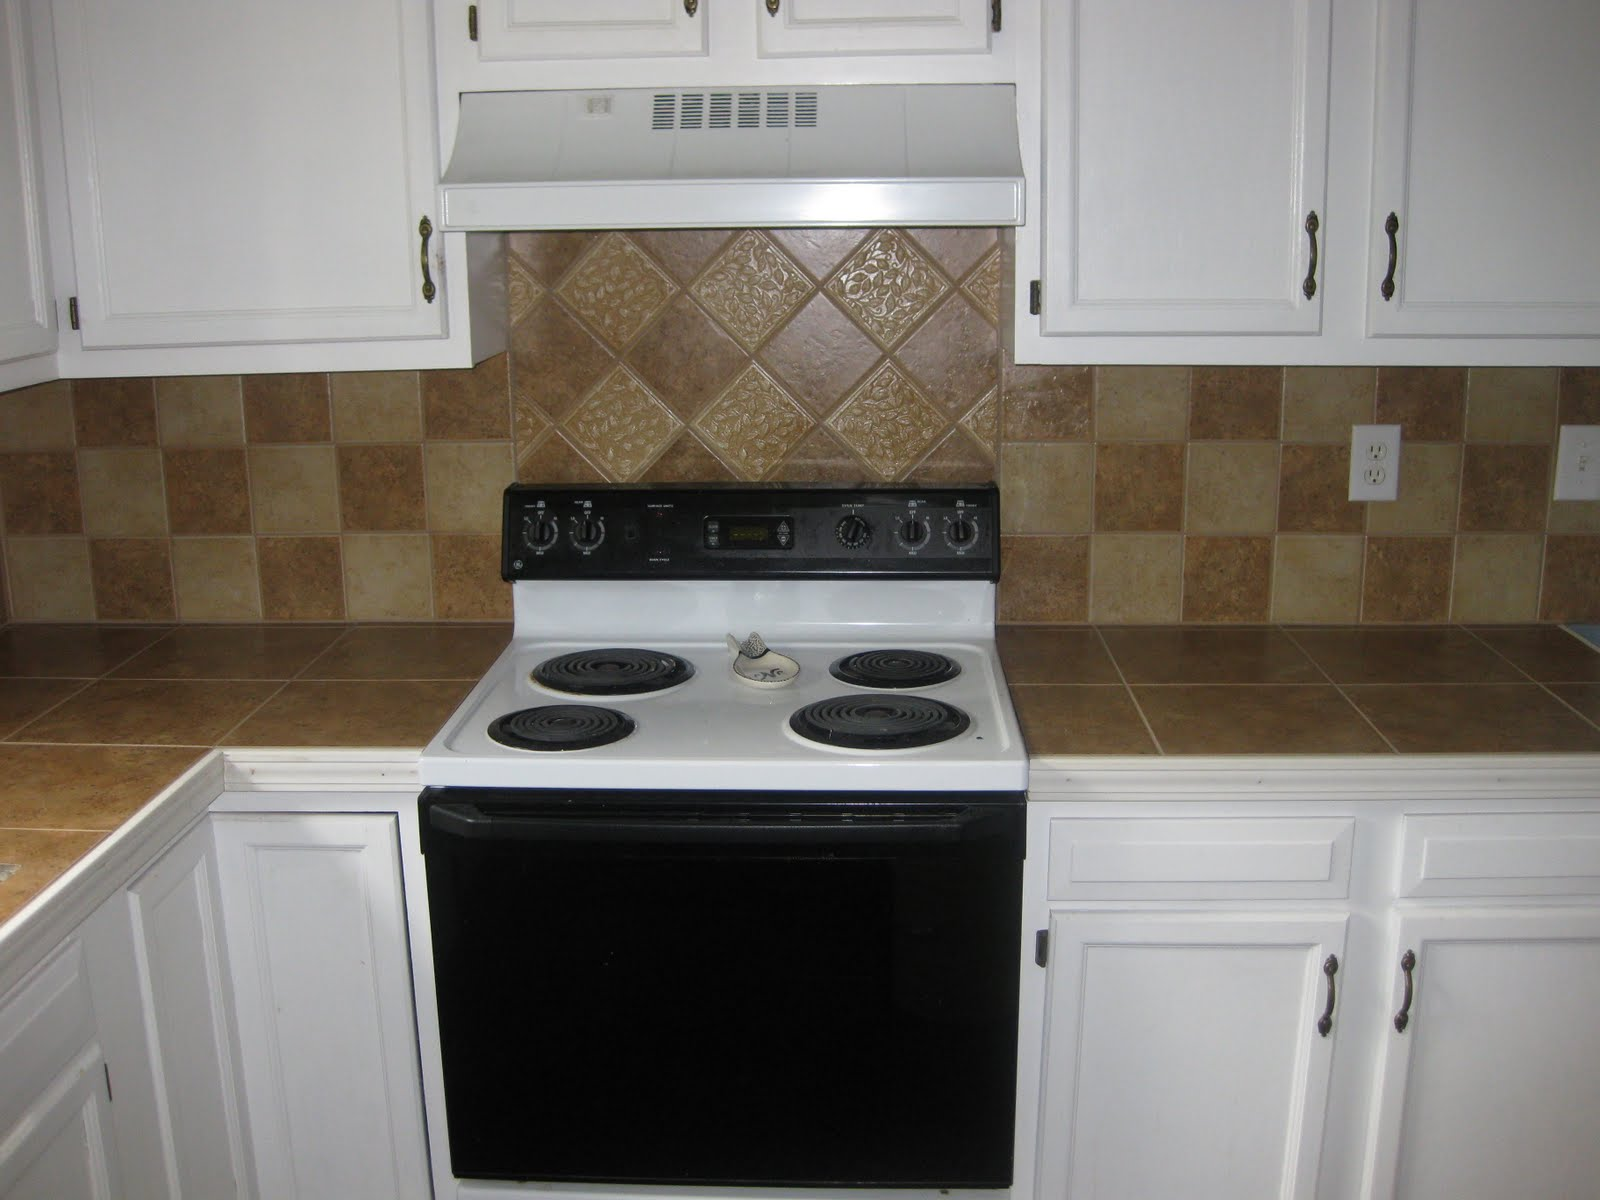 Countertop Backsplash Trim : ... kitchen. A wood trim is used on the edges of the Countertop for a